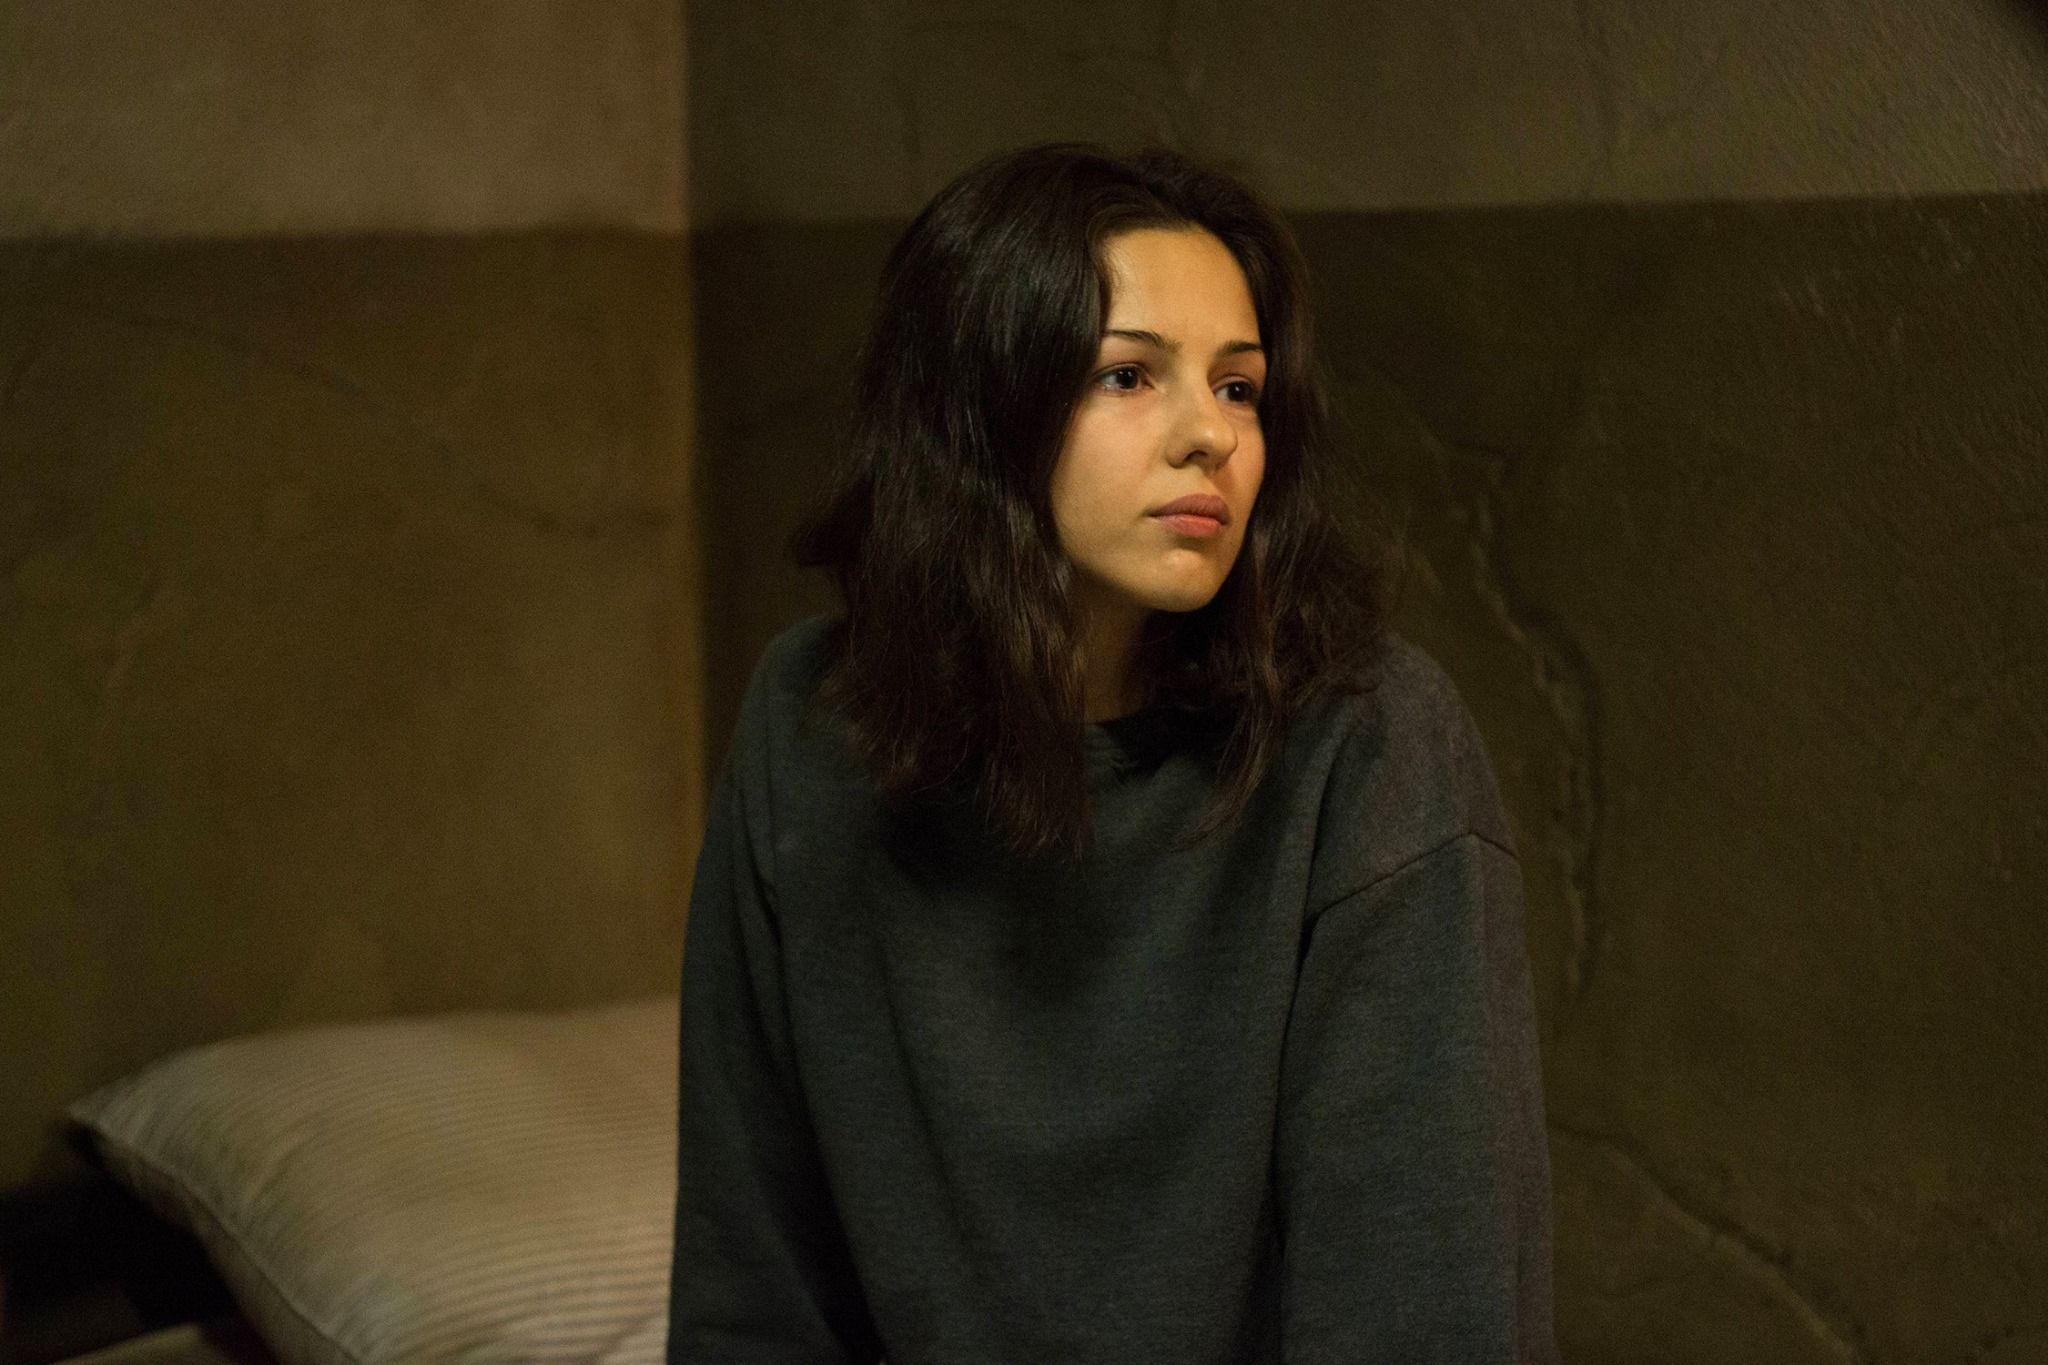 THE AMERICANS Season 4: Was Nina's fate a harbinger of things to come?